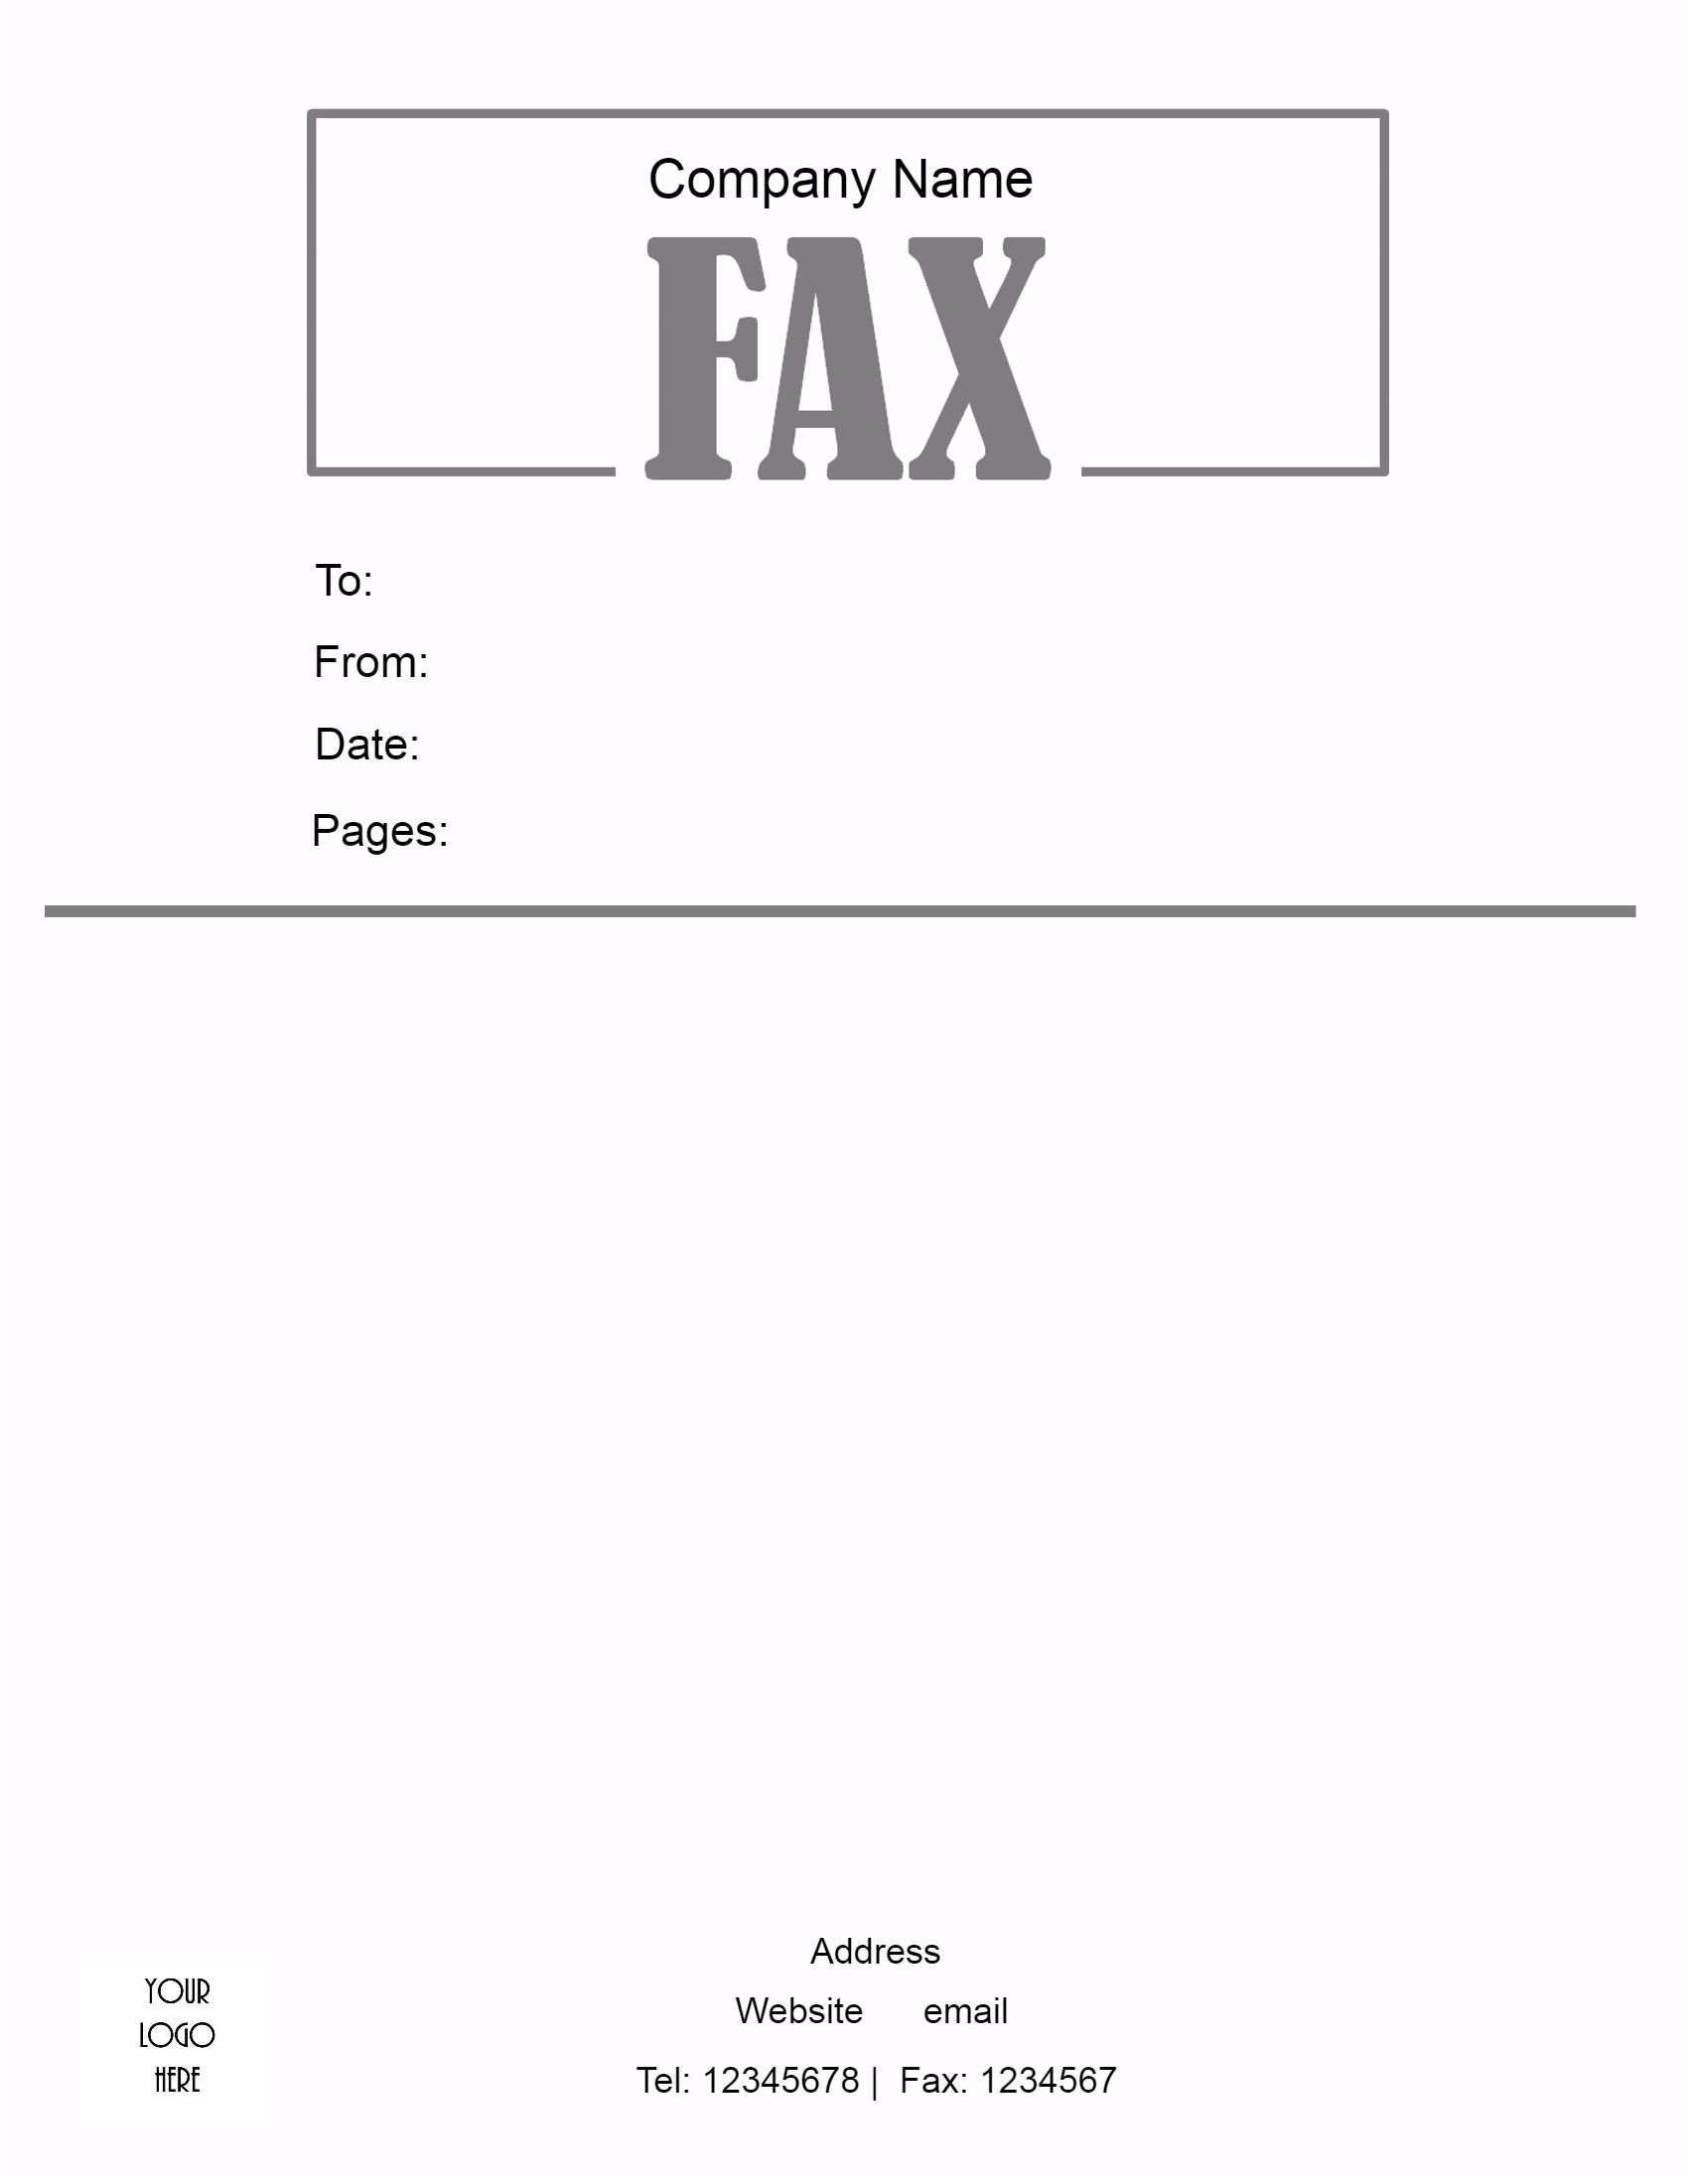 Free Fax Cover Sheet  Example Fax Cover Sheet